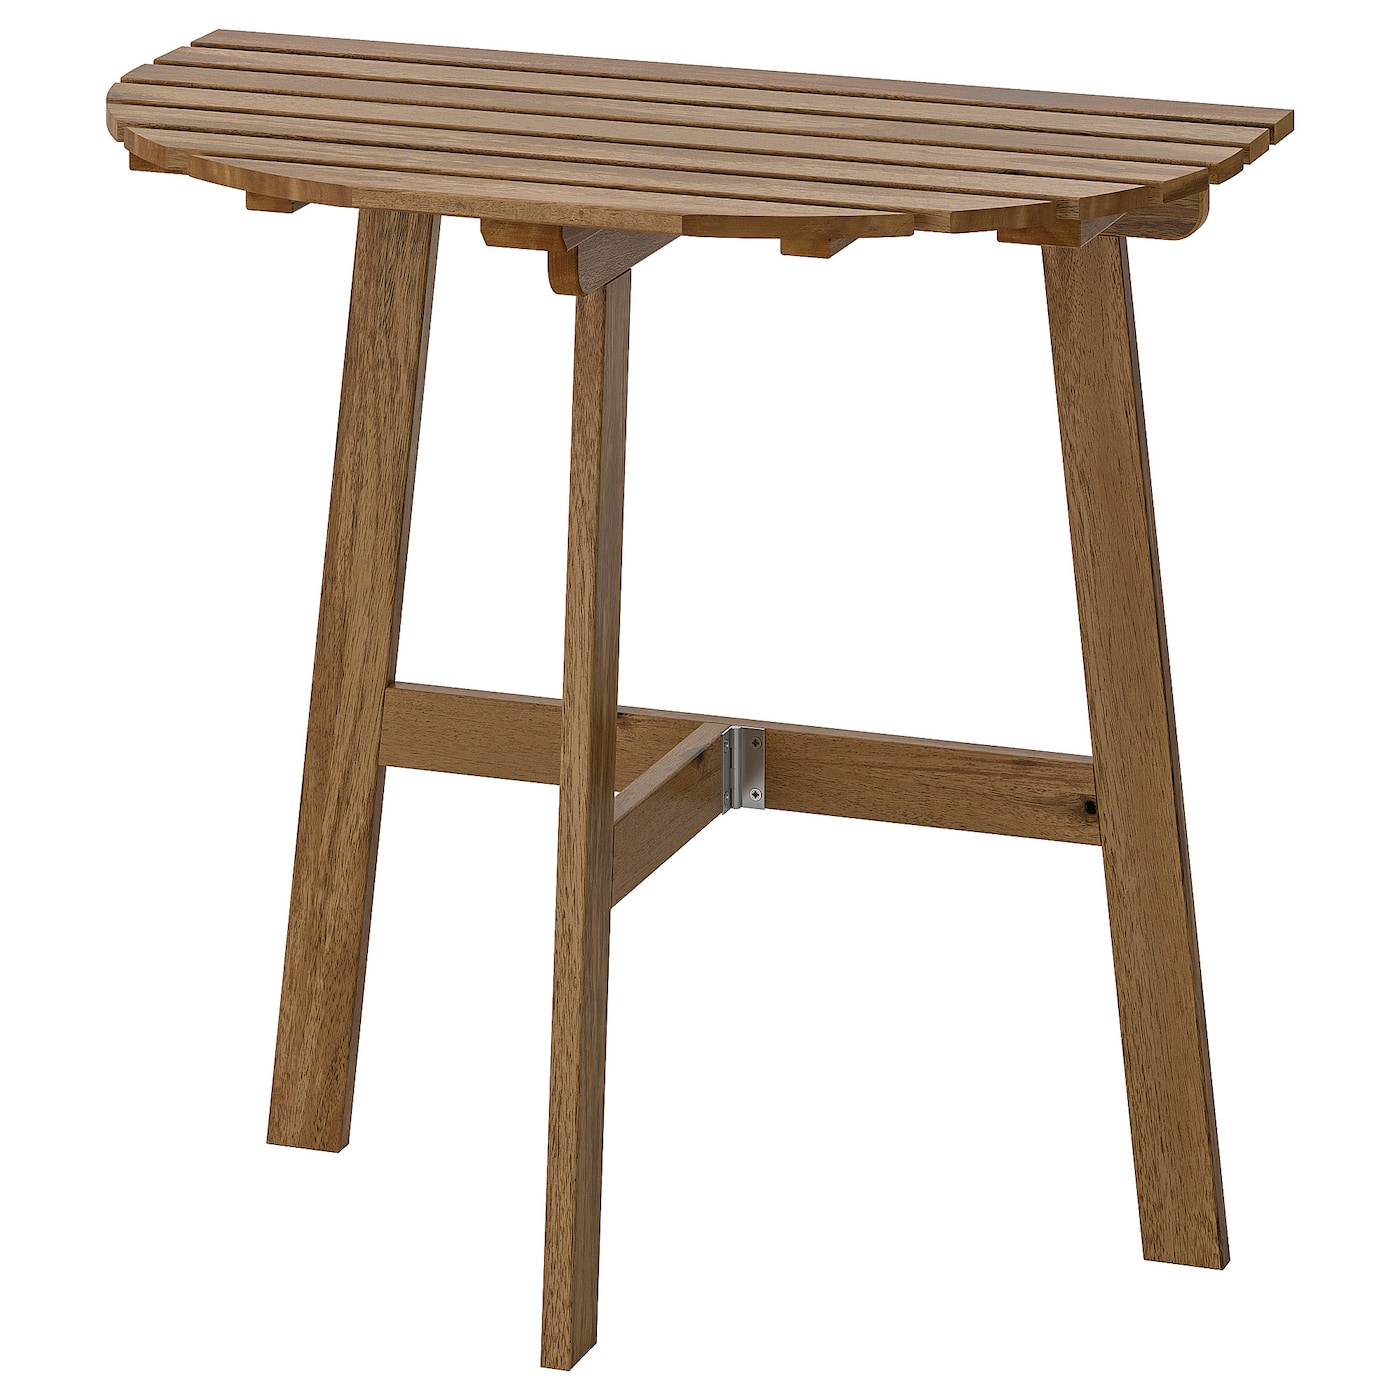 "ASKHOLMEN Table for wall, outdoor - folding light brown stained 11212 112/12x1127  12/12 "" (12x12 cm)"